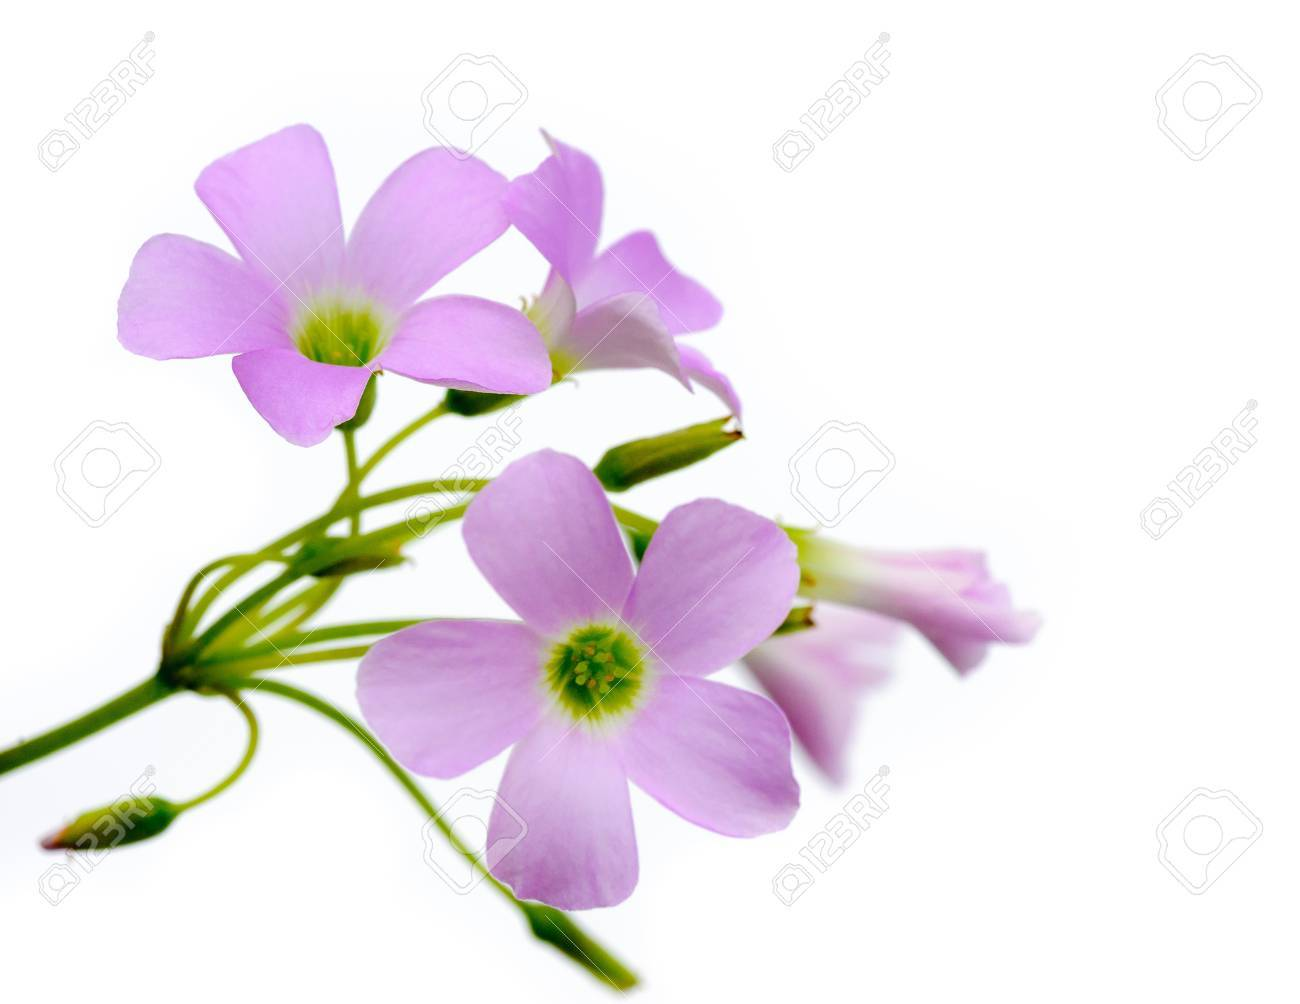 Lovely Purple Flowers Against White Background Dianthus Flowers